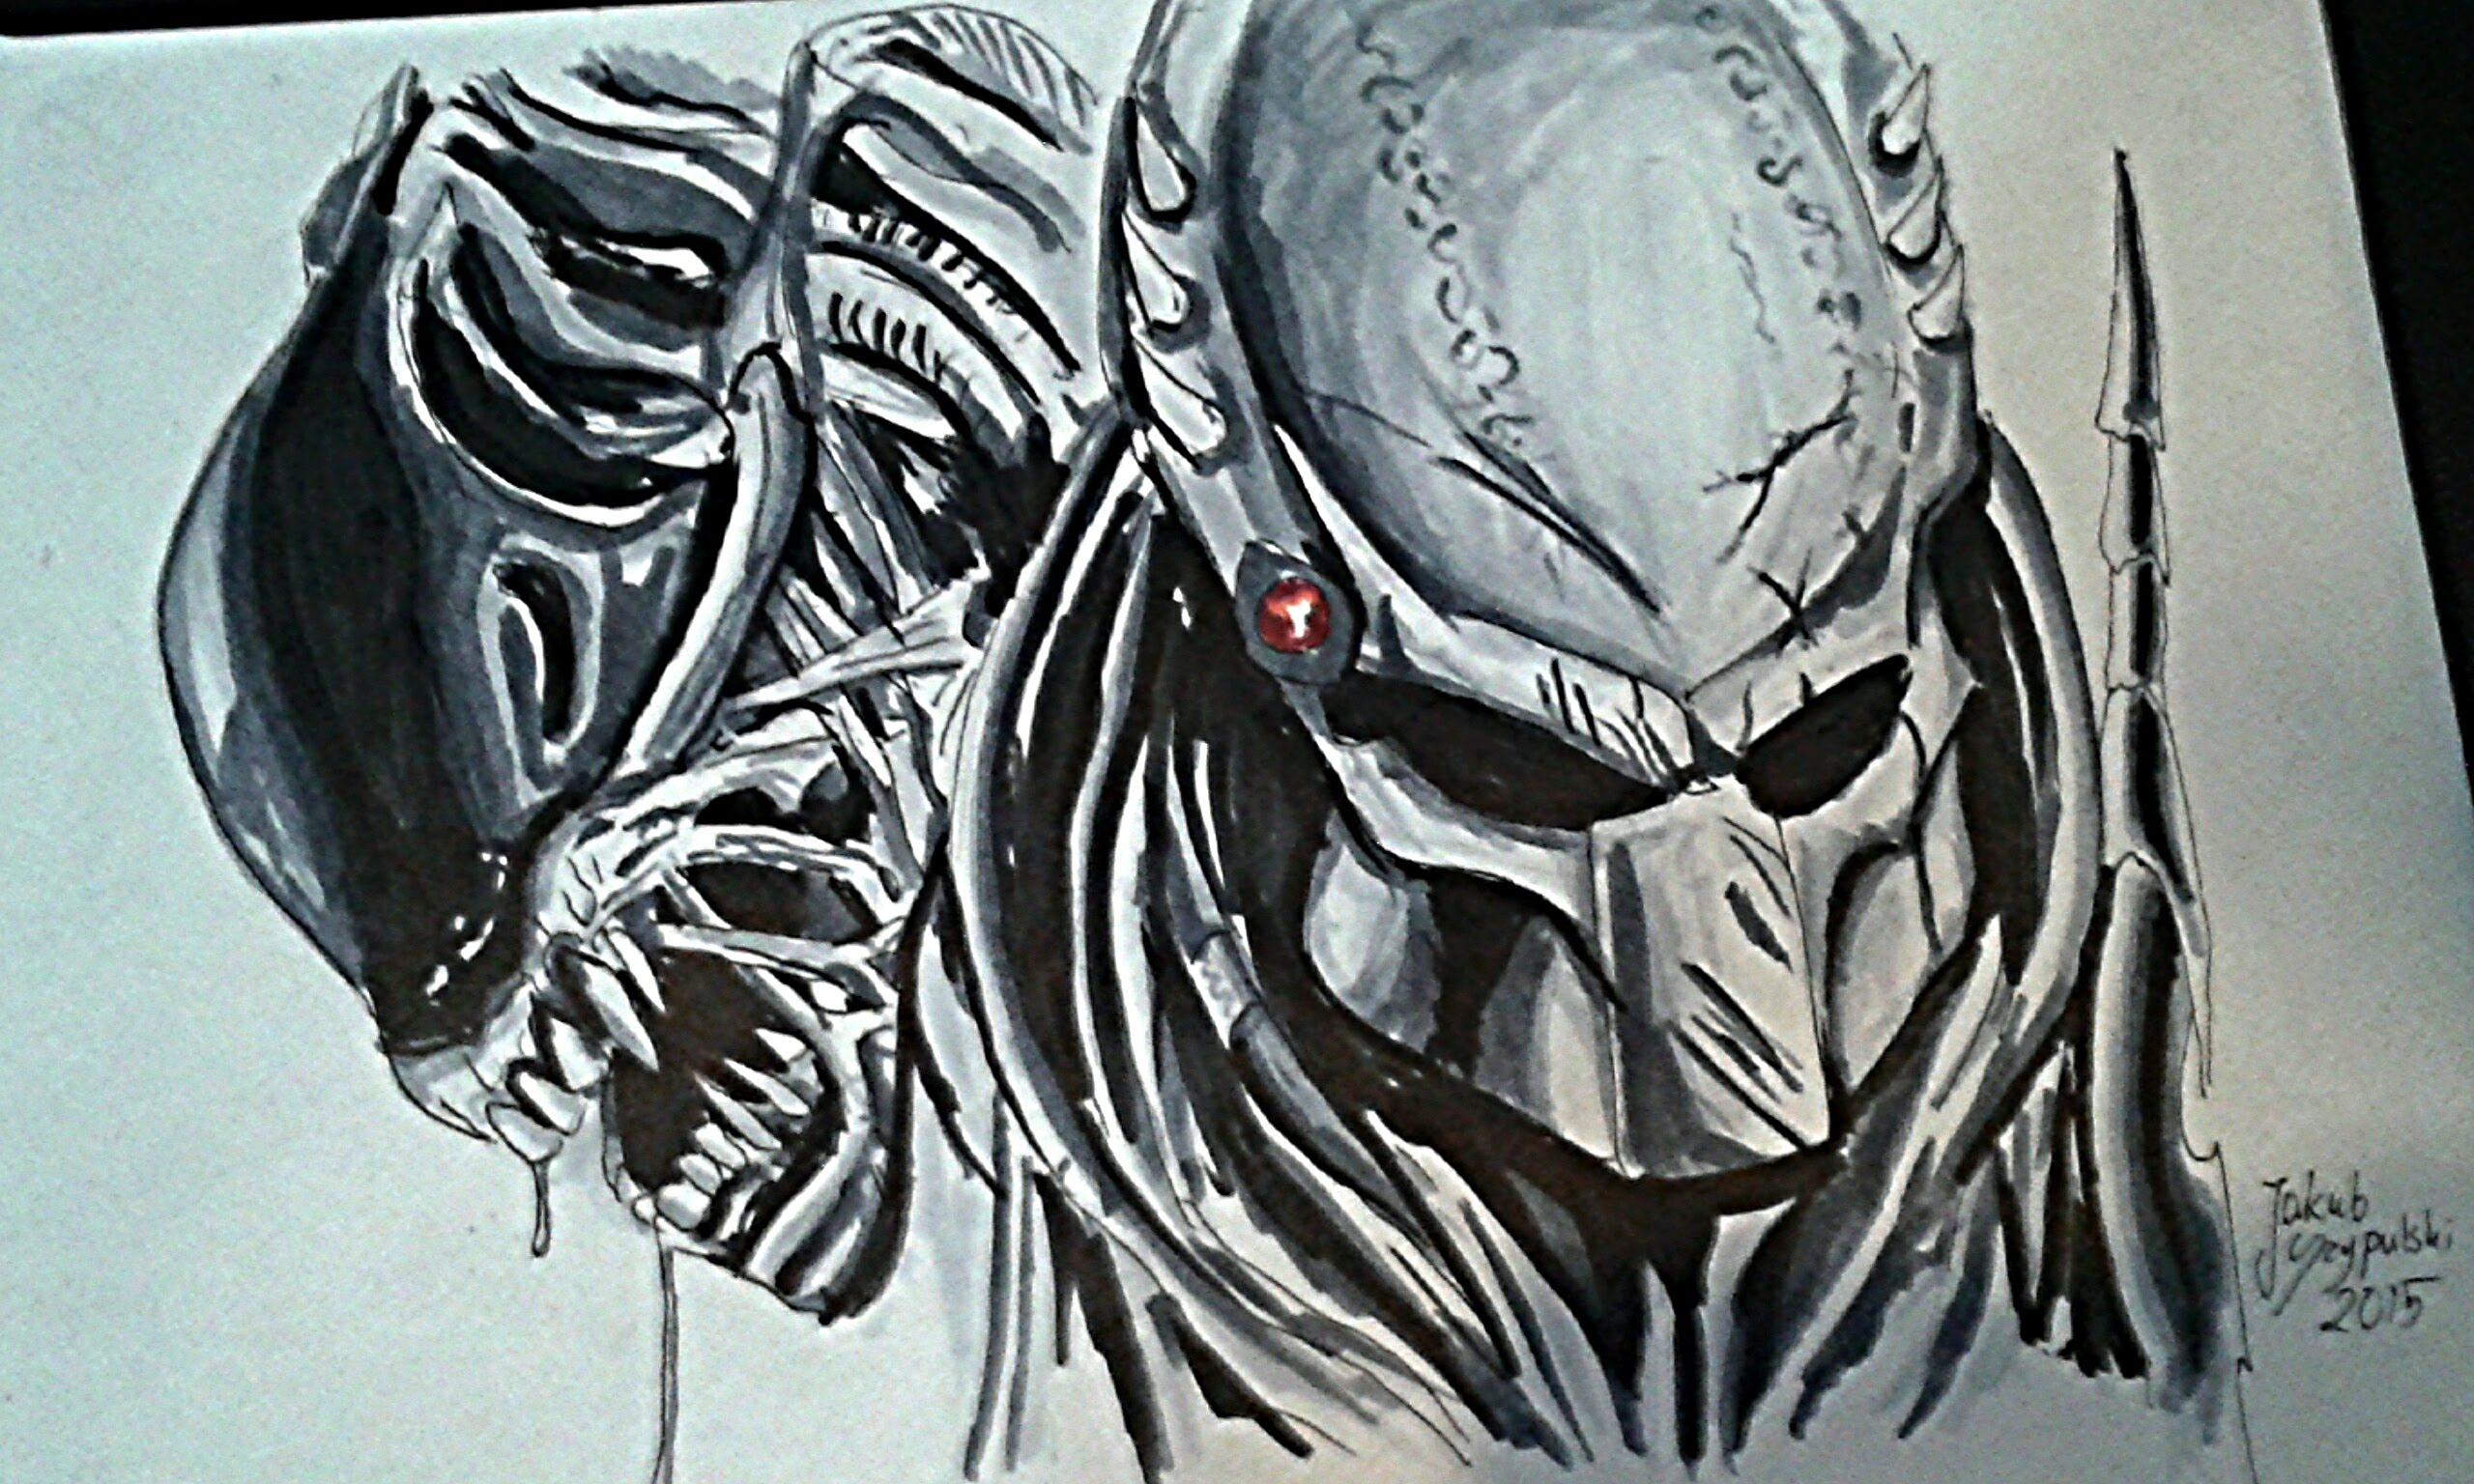 Drawn predator alien vs predator Alien vs Predator [ markers